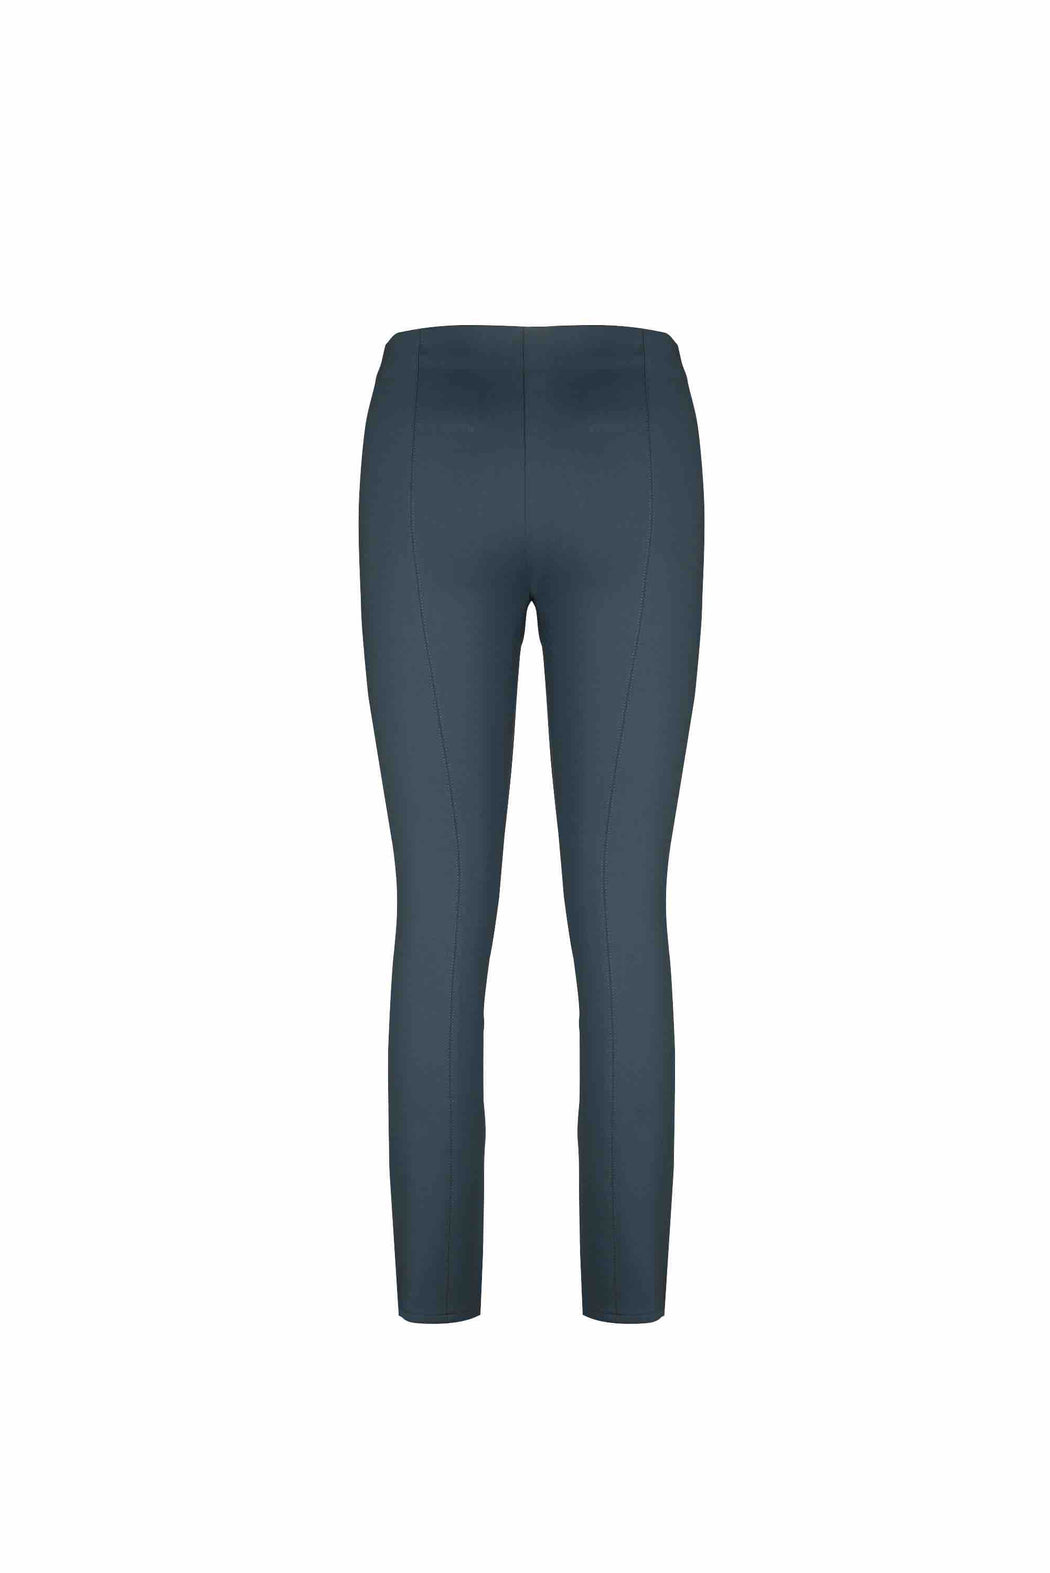 Back view of Women Super Stretchy Leggings in Dark Grey